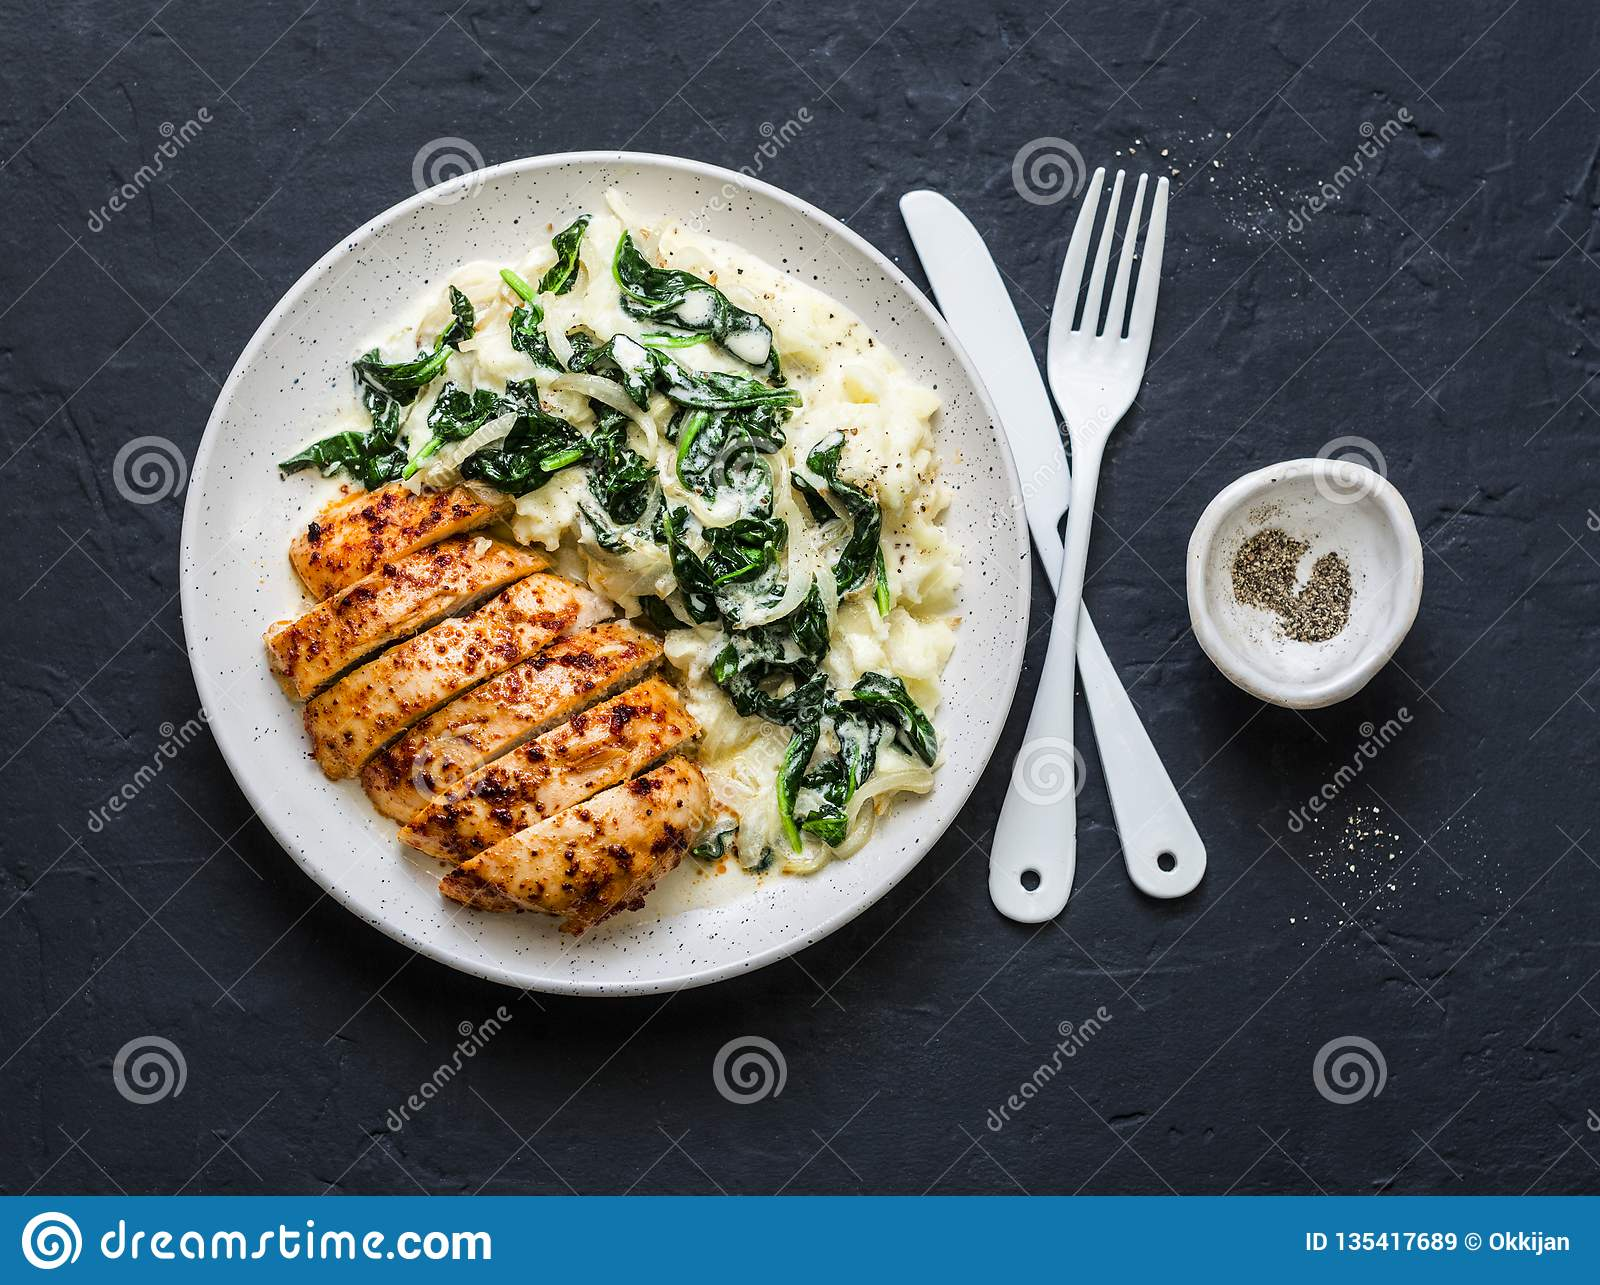 Baked chicken breast, mashed potatoes with creamy spinach on dark background, top view.